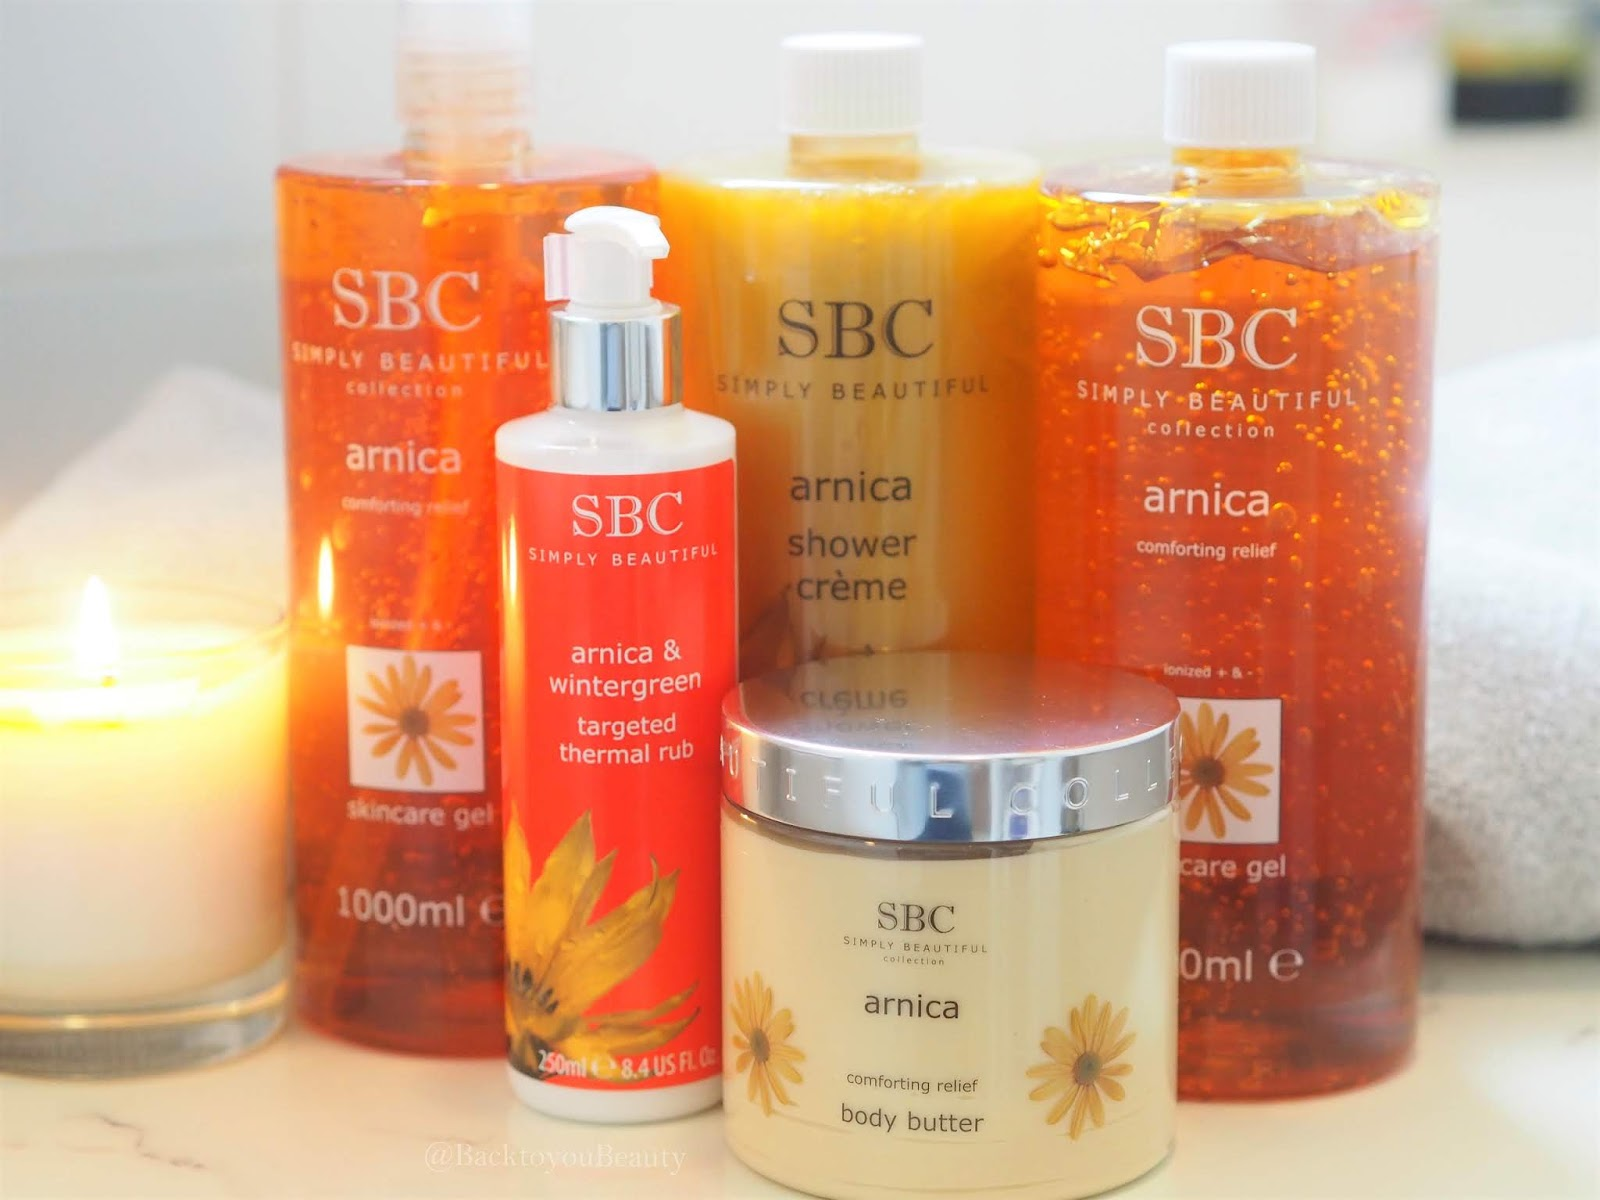 The Arnica Collection SBC